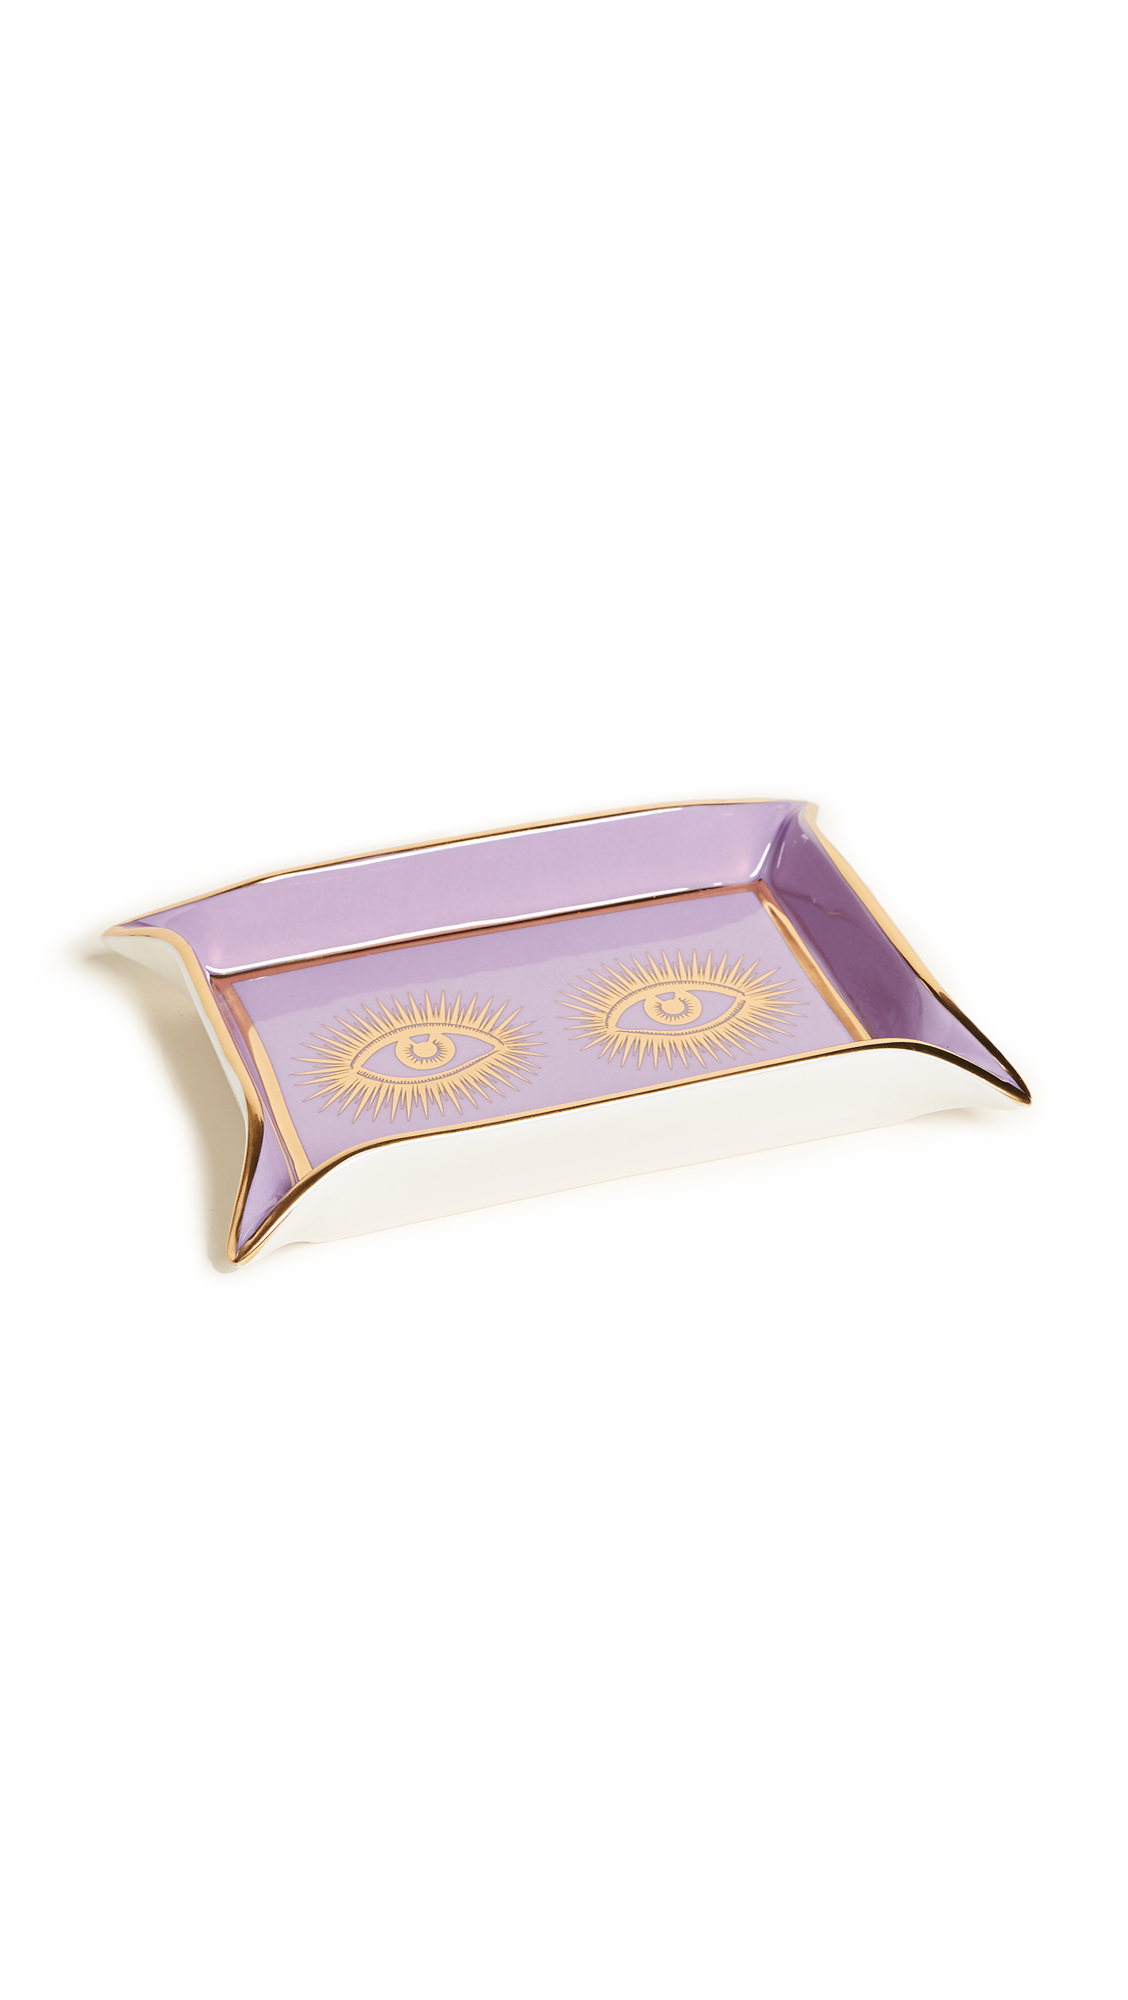 Jonathan Adler Eyes Valet Tray - White/Gold